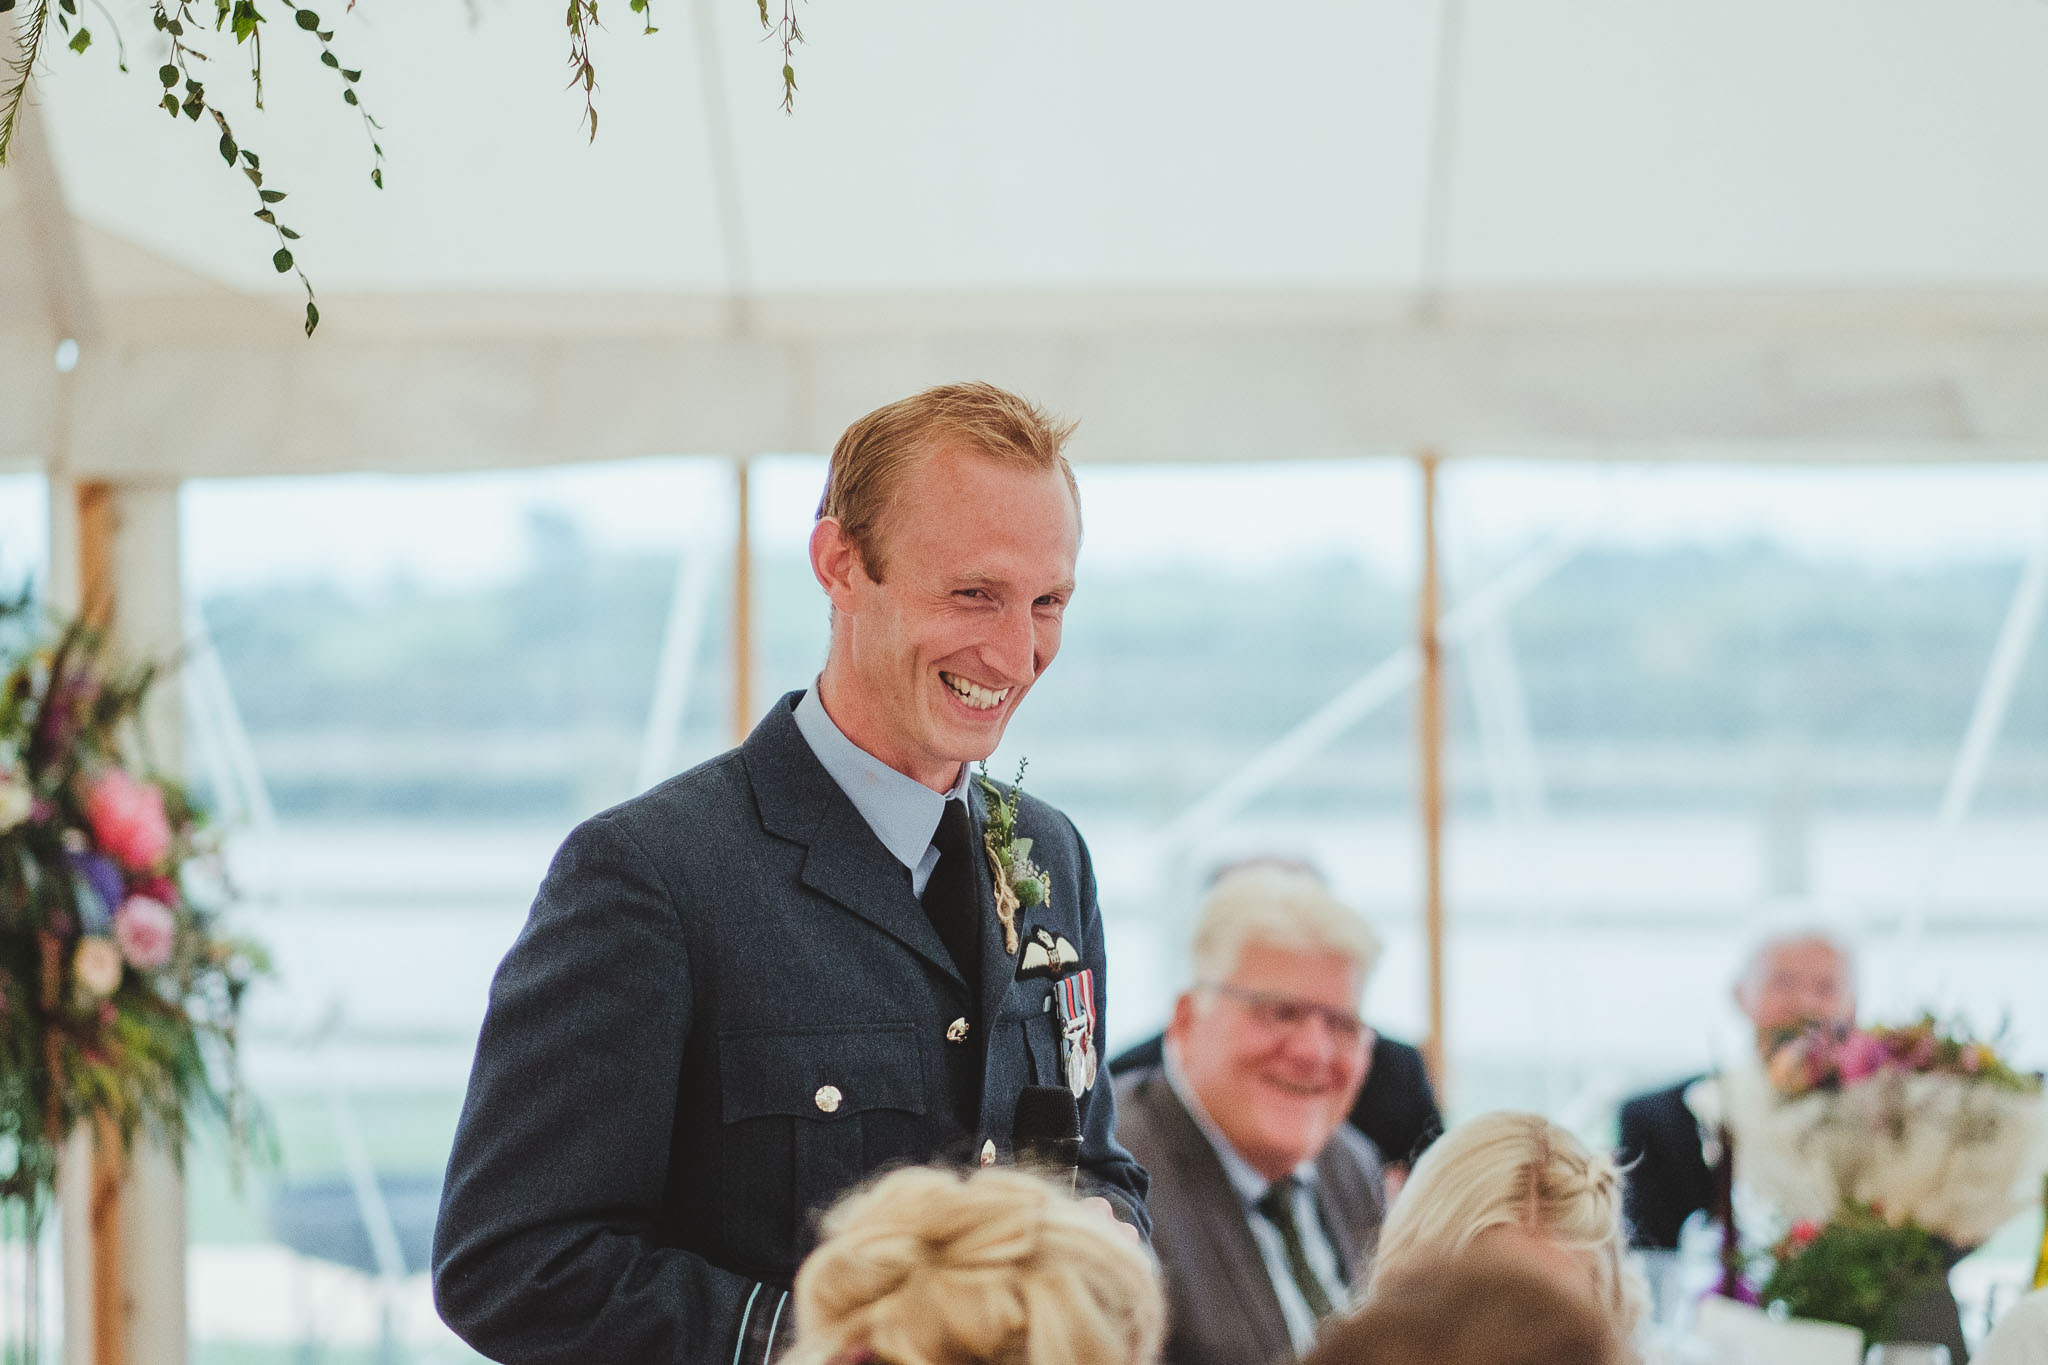 The groom laughing during his wedding speech